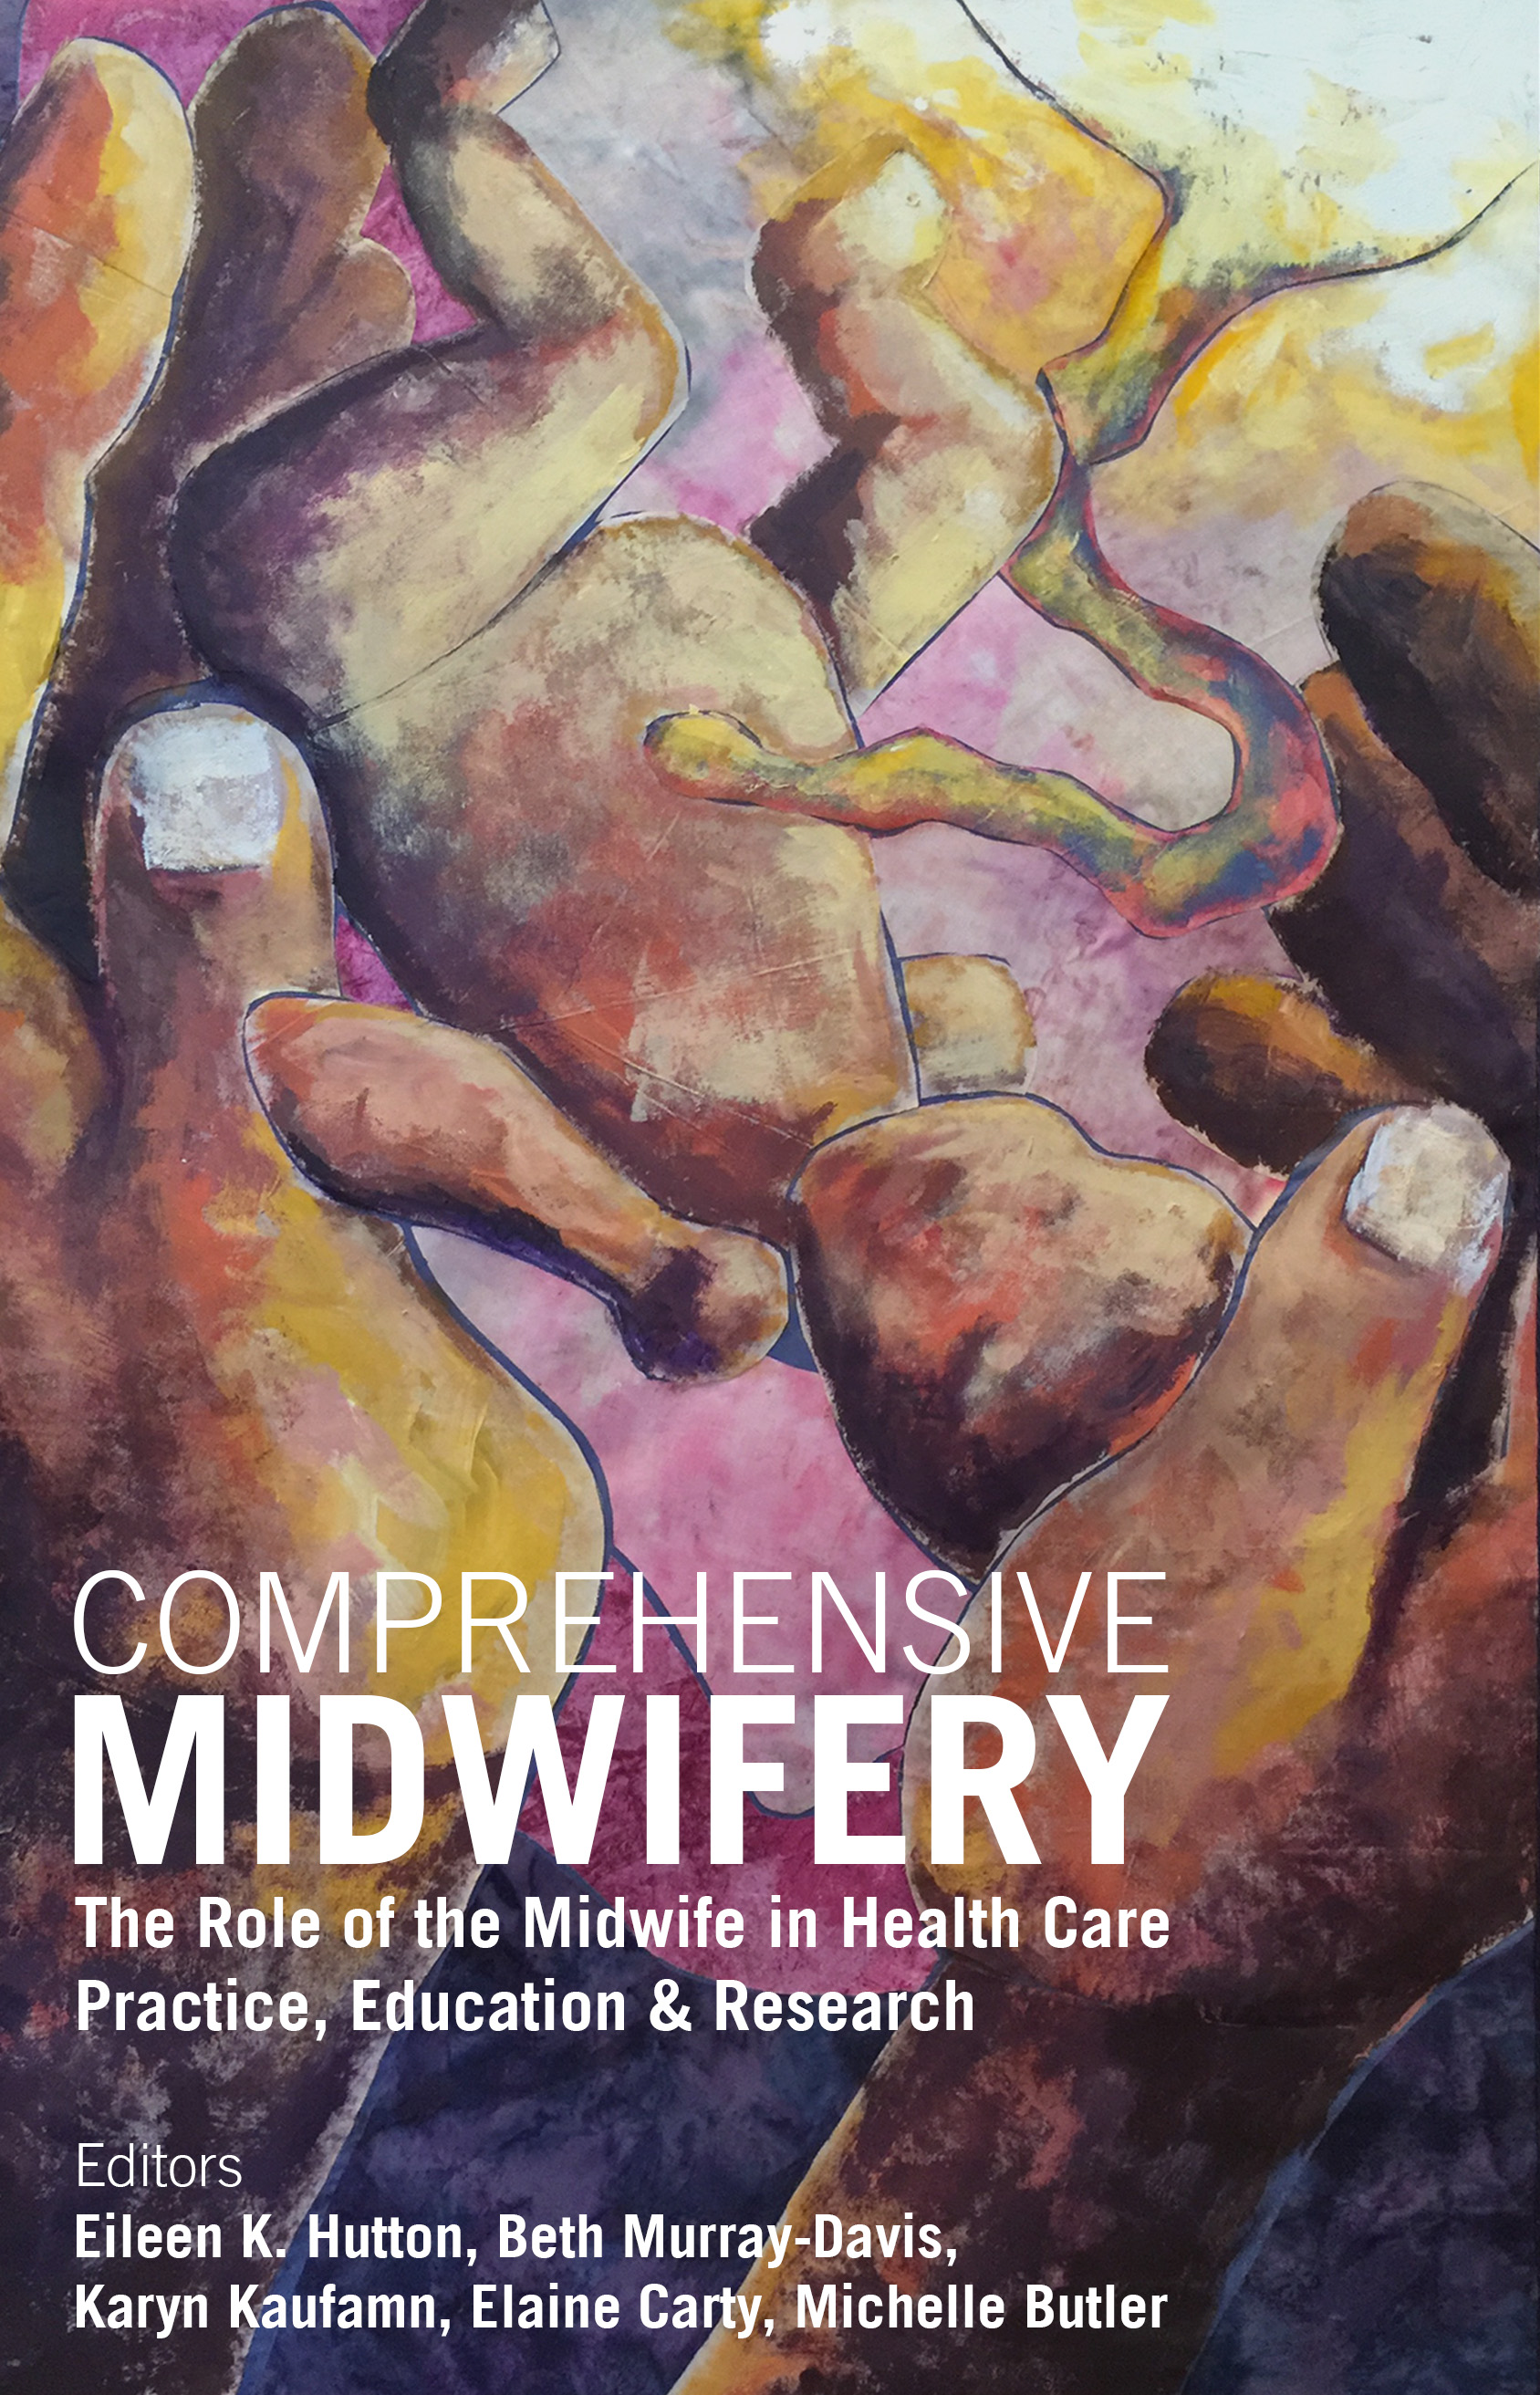 Cover image for Comprehensive Midwifery: The role of the midwife in health care practice, education, and research